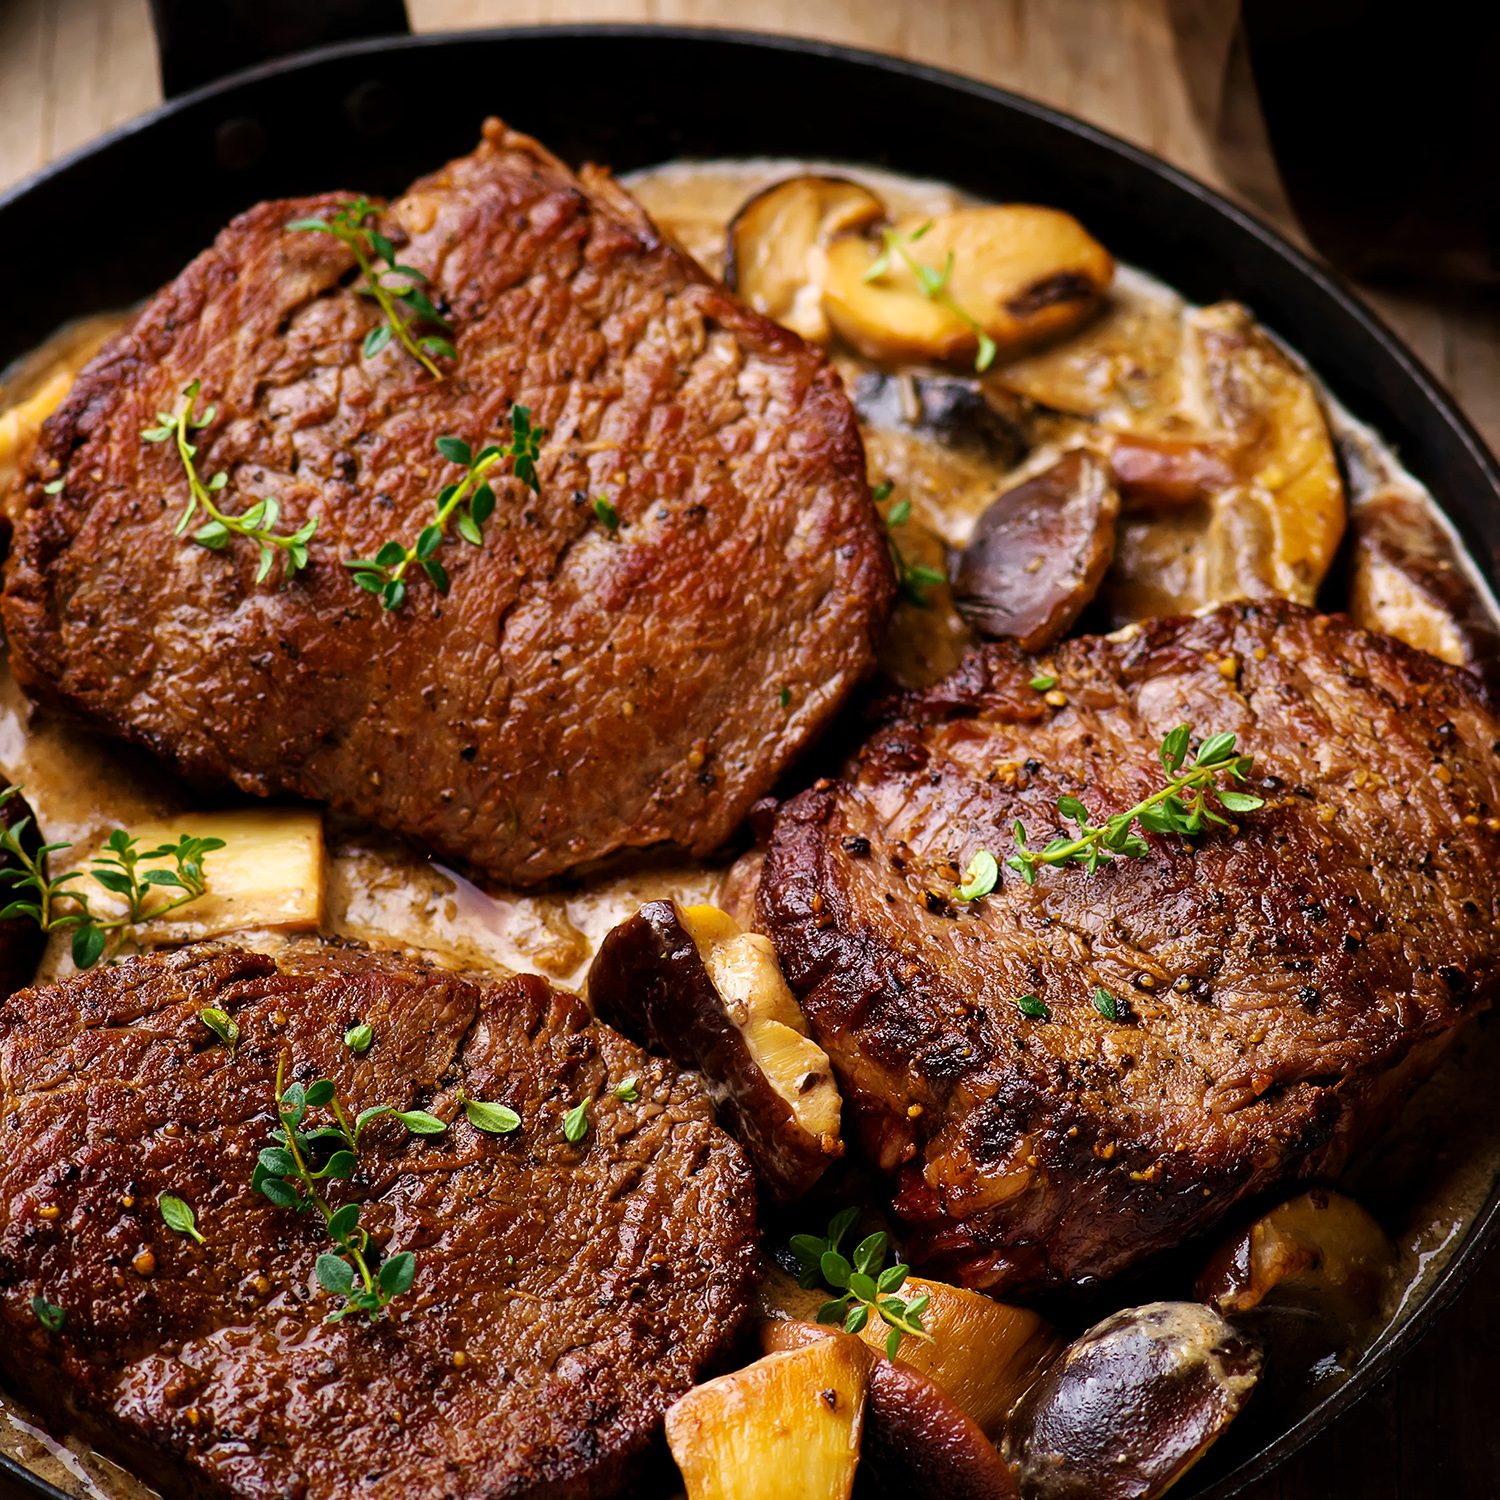 Beef sirloin with mushroom whisky sauce